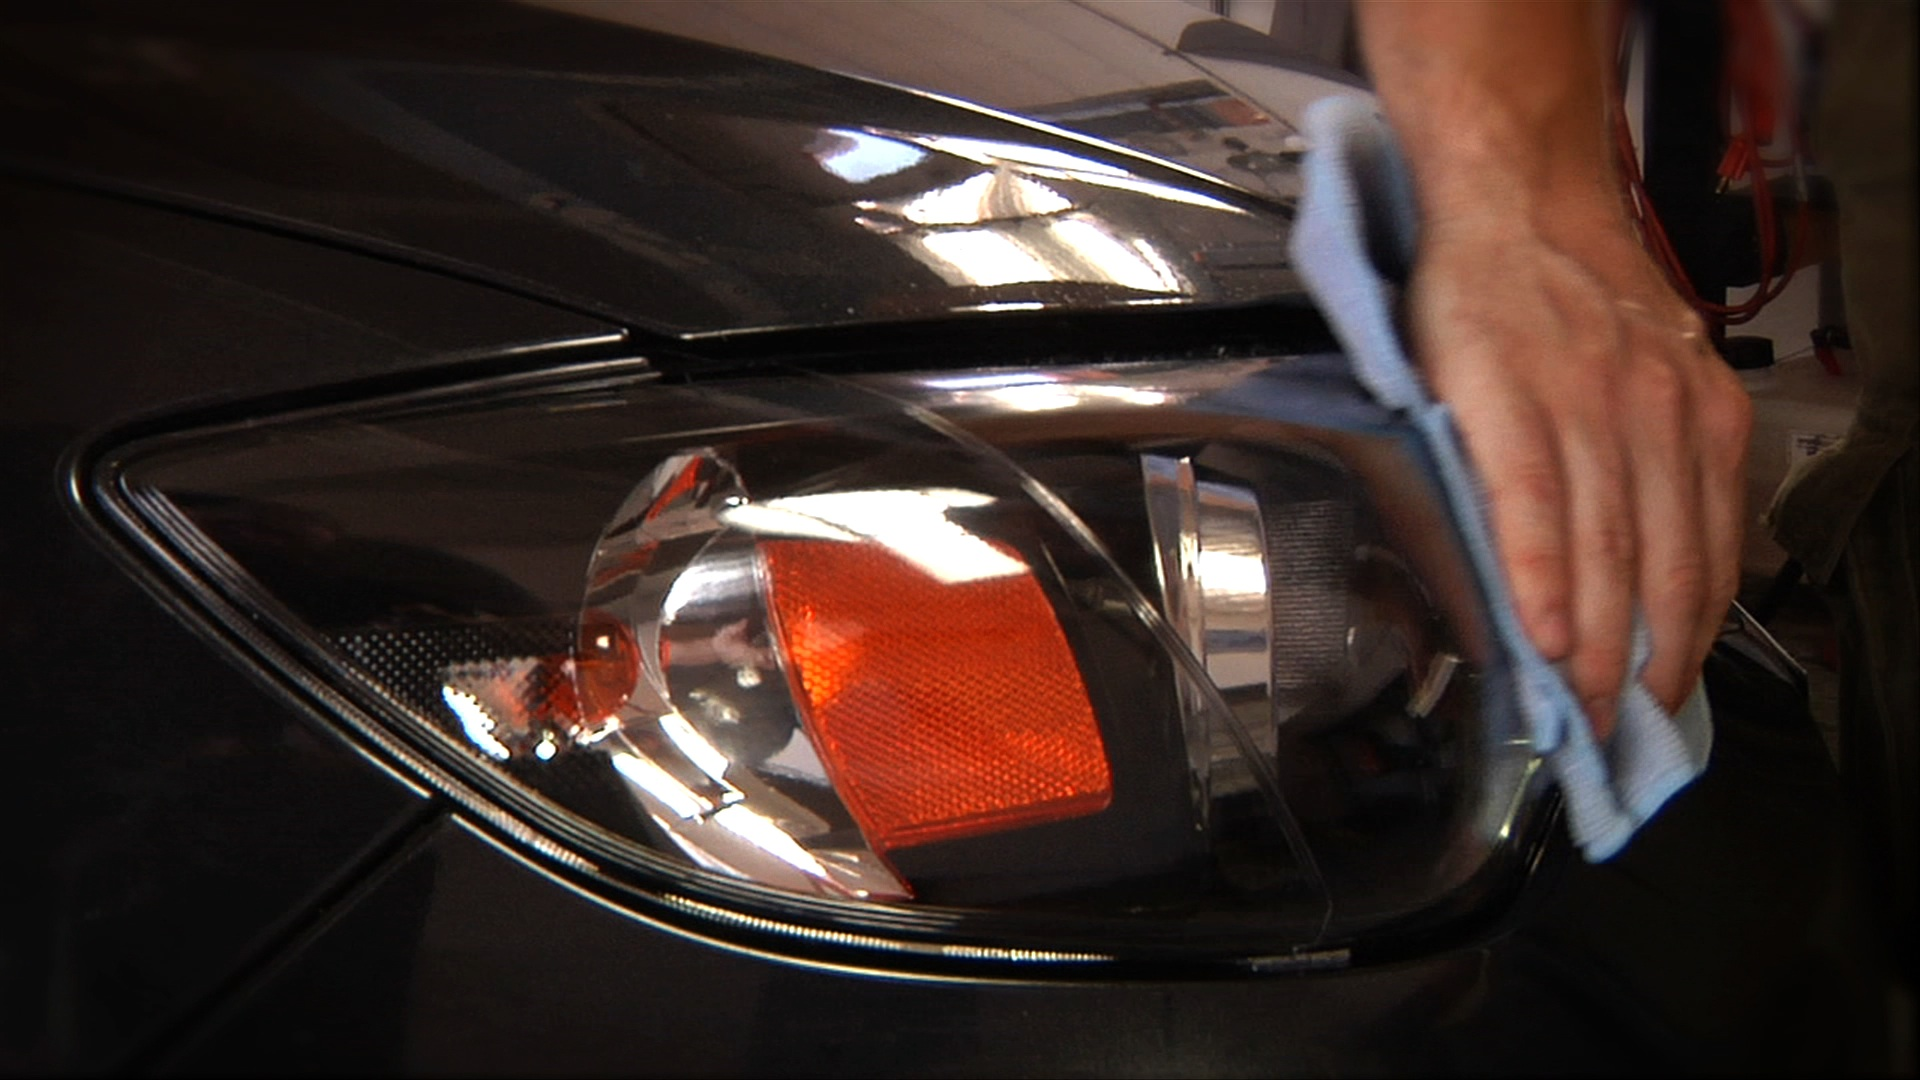 Clear headlight protection by FilmStar